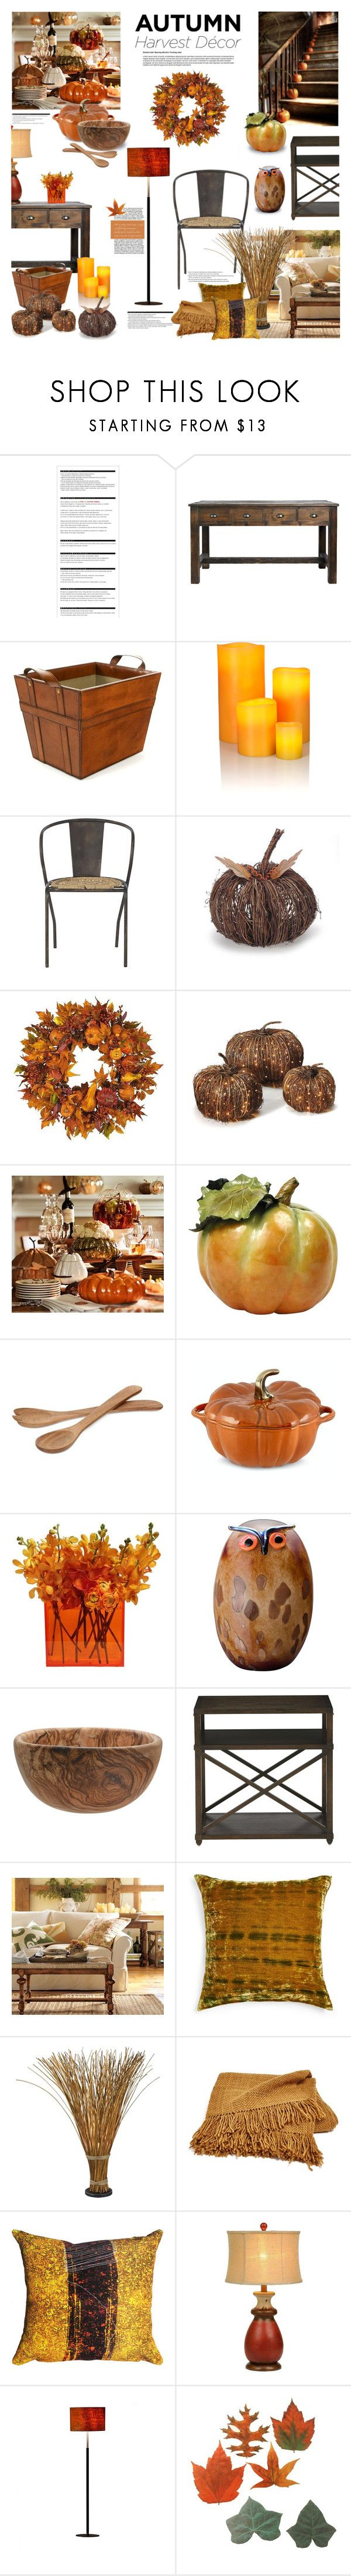 """""""Autumn Harvest Decor"""" by margaretferreira ❤ liked on Polyvore featuring interior, interiors, interior design, home, home decor, interior decorating, Arche, Klein & more, Nearly Natural and Pottery Barn"""